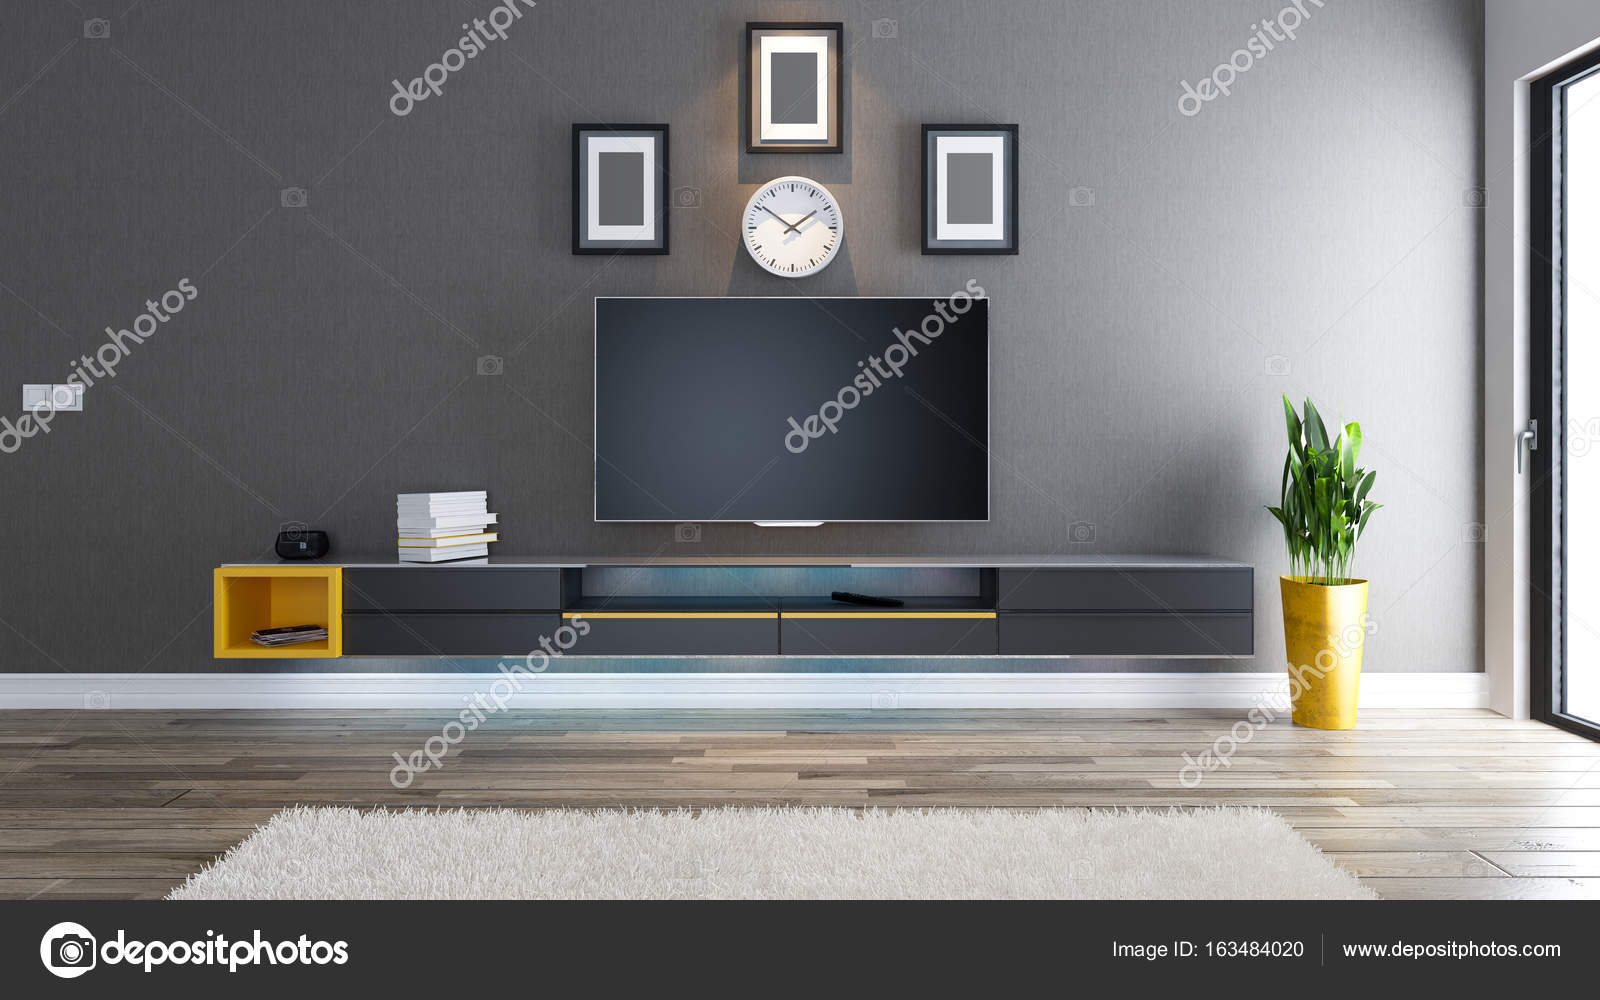 Tv kamer interieur design idee u stockfoto sseven